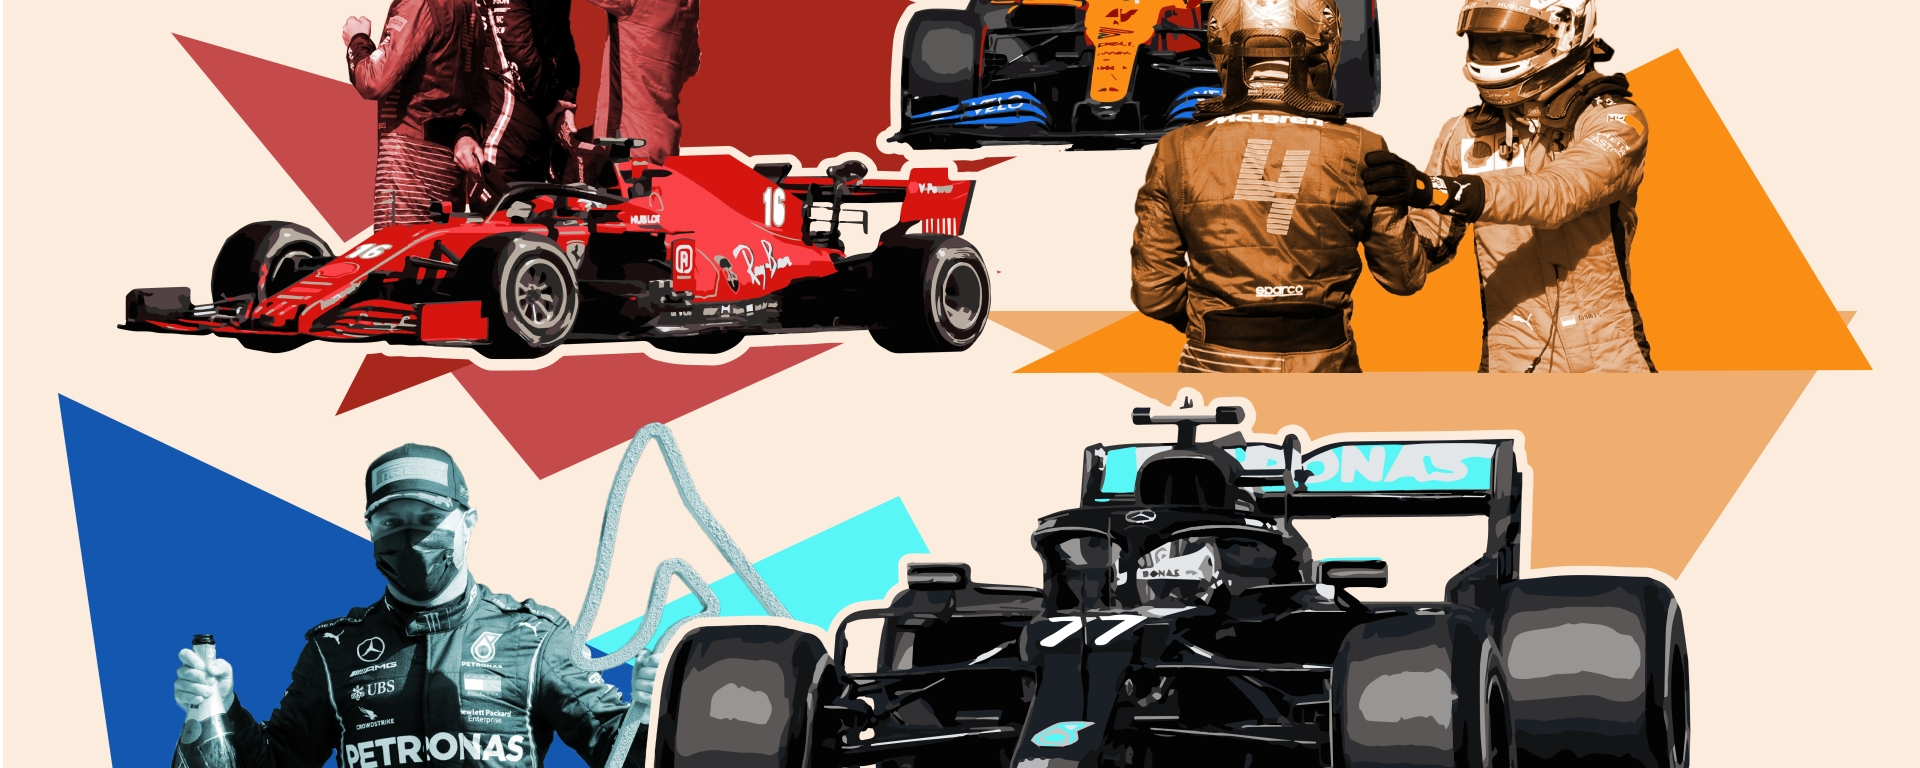 Three formula one drivers celebrate the podium with colorful shapes behind them and their cars